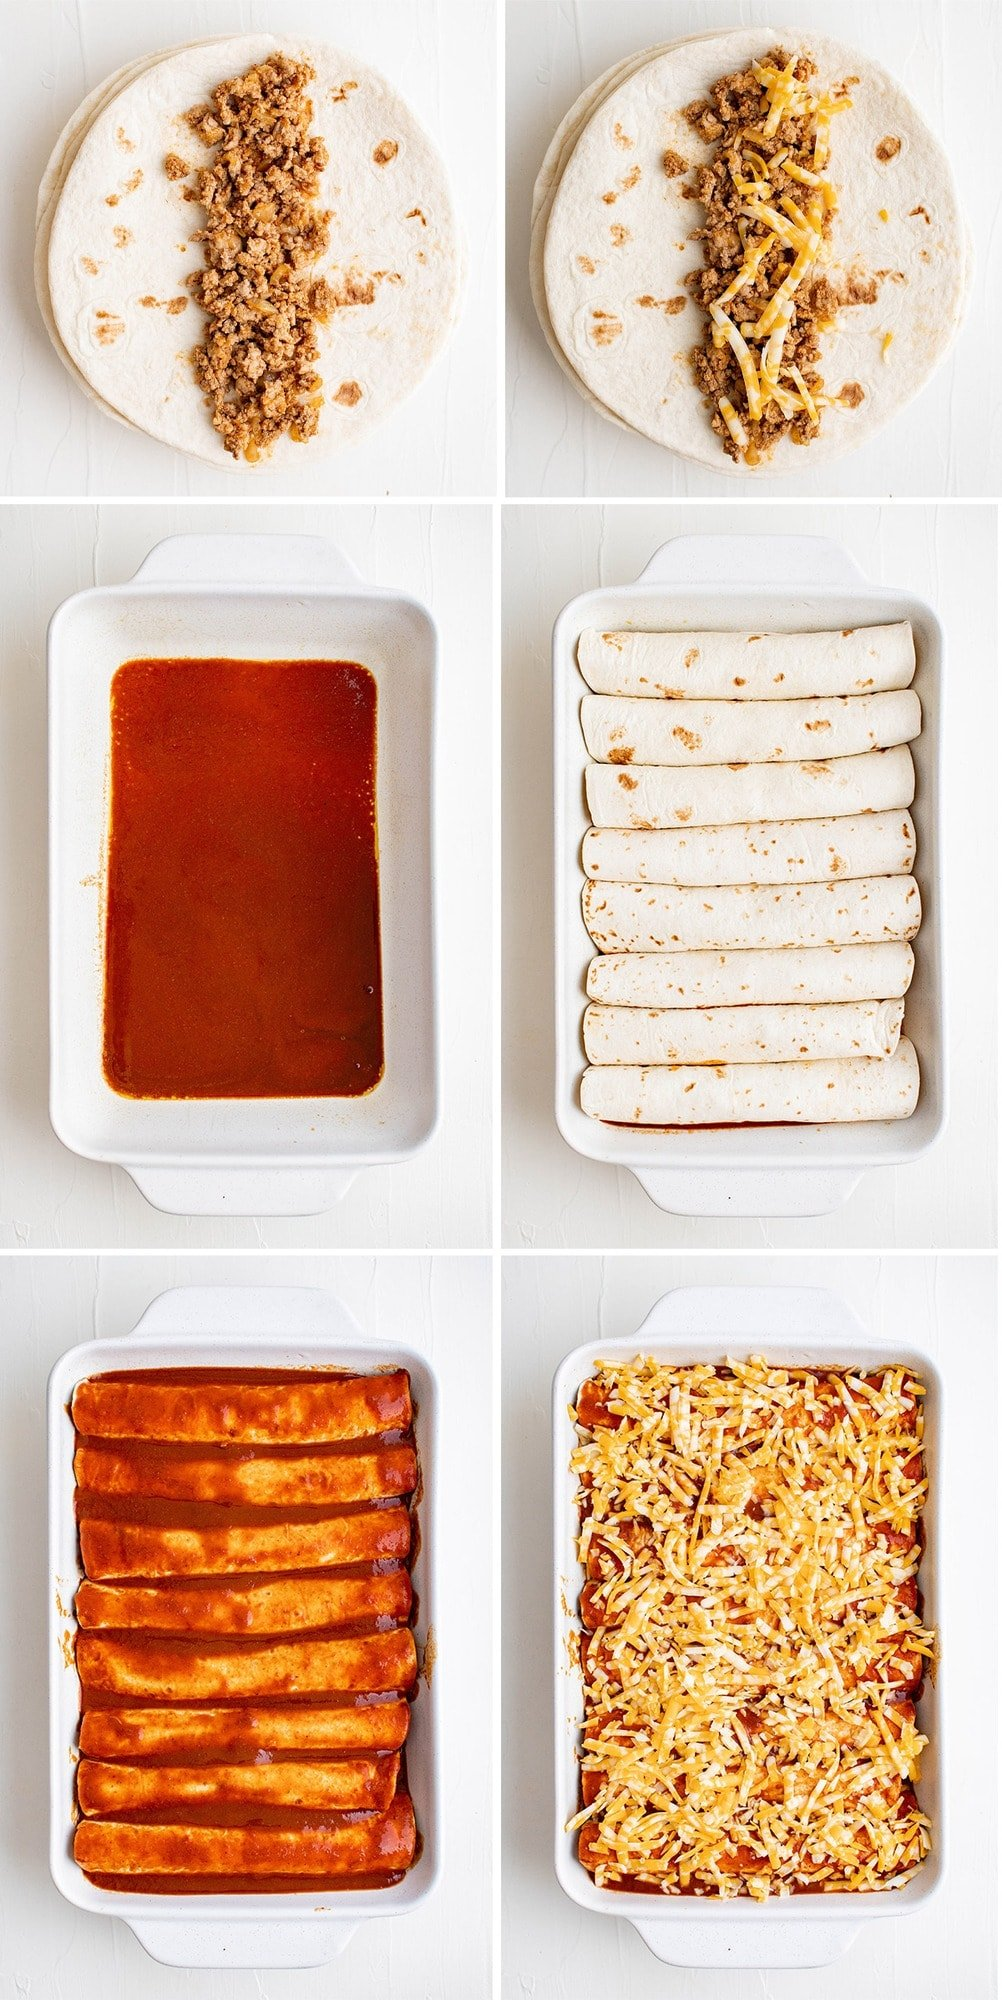 collage of images showing how to make enchiladas